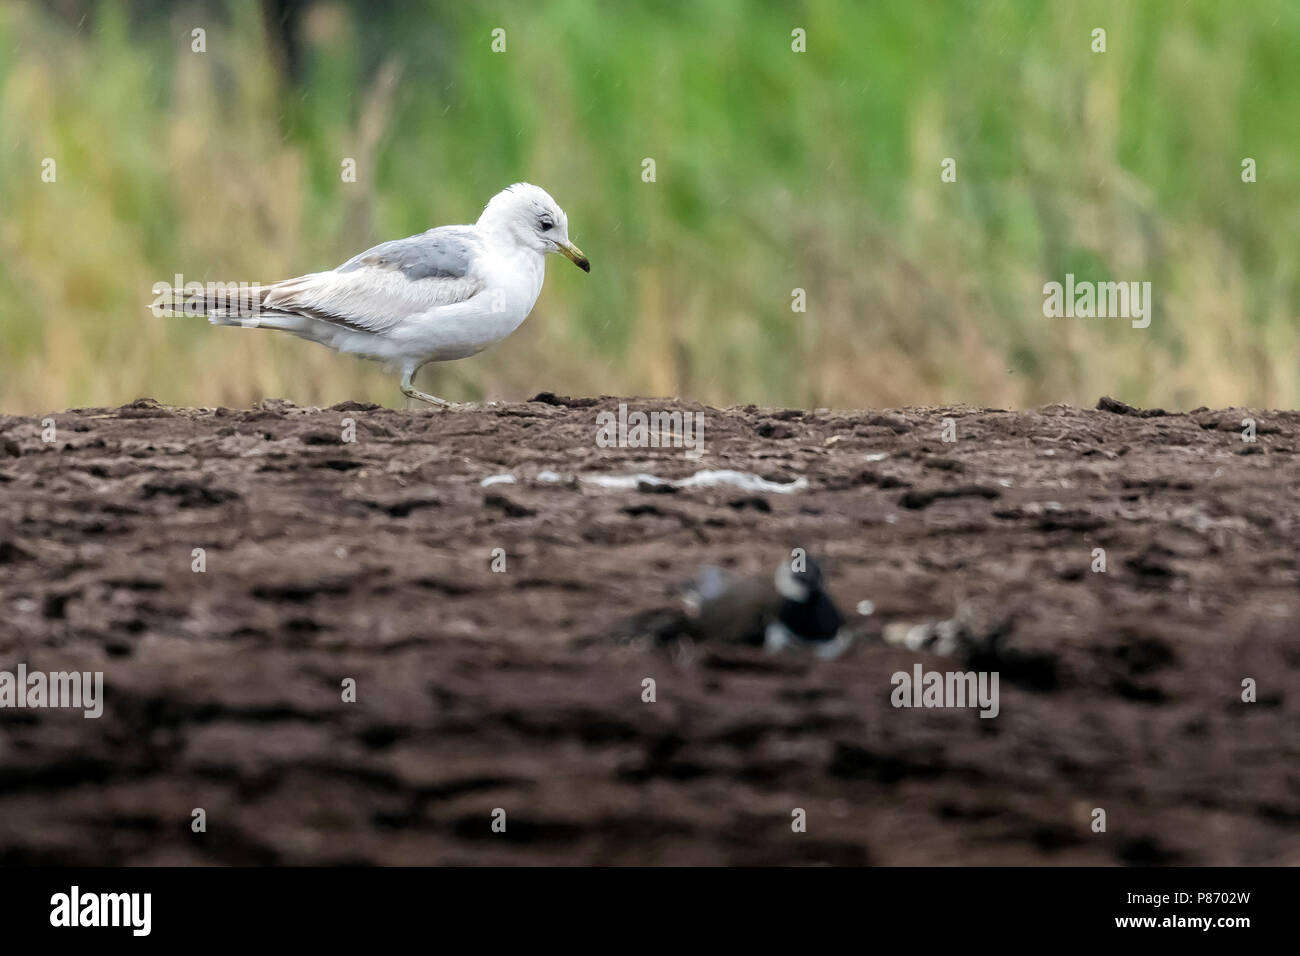 First summer Russian Common Gull walking around a dump in Etkaterinburg, Russia. June 12, 2016. - Stock Image